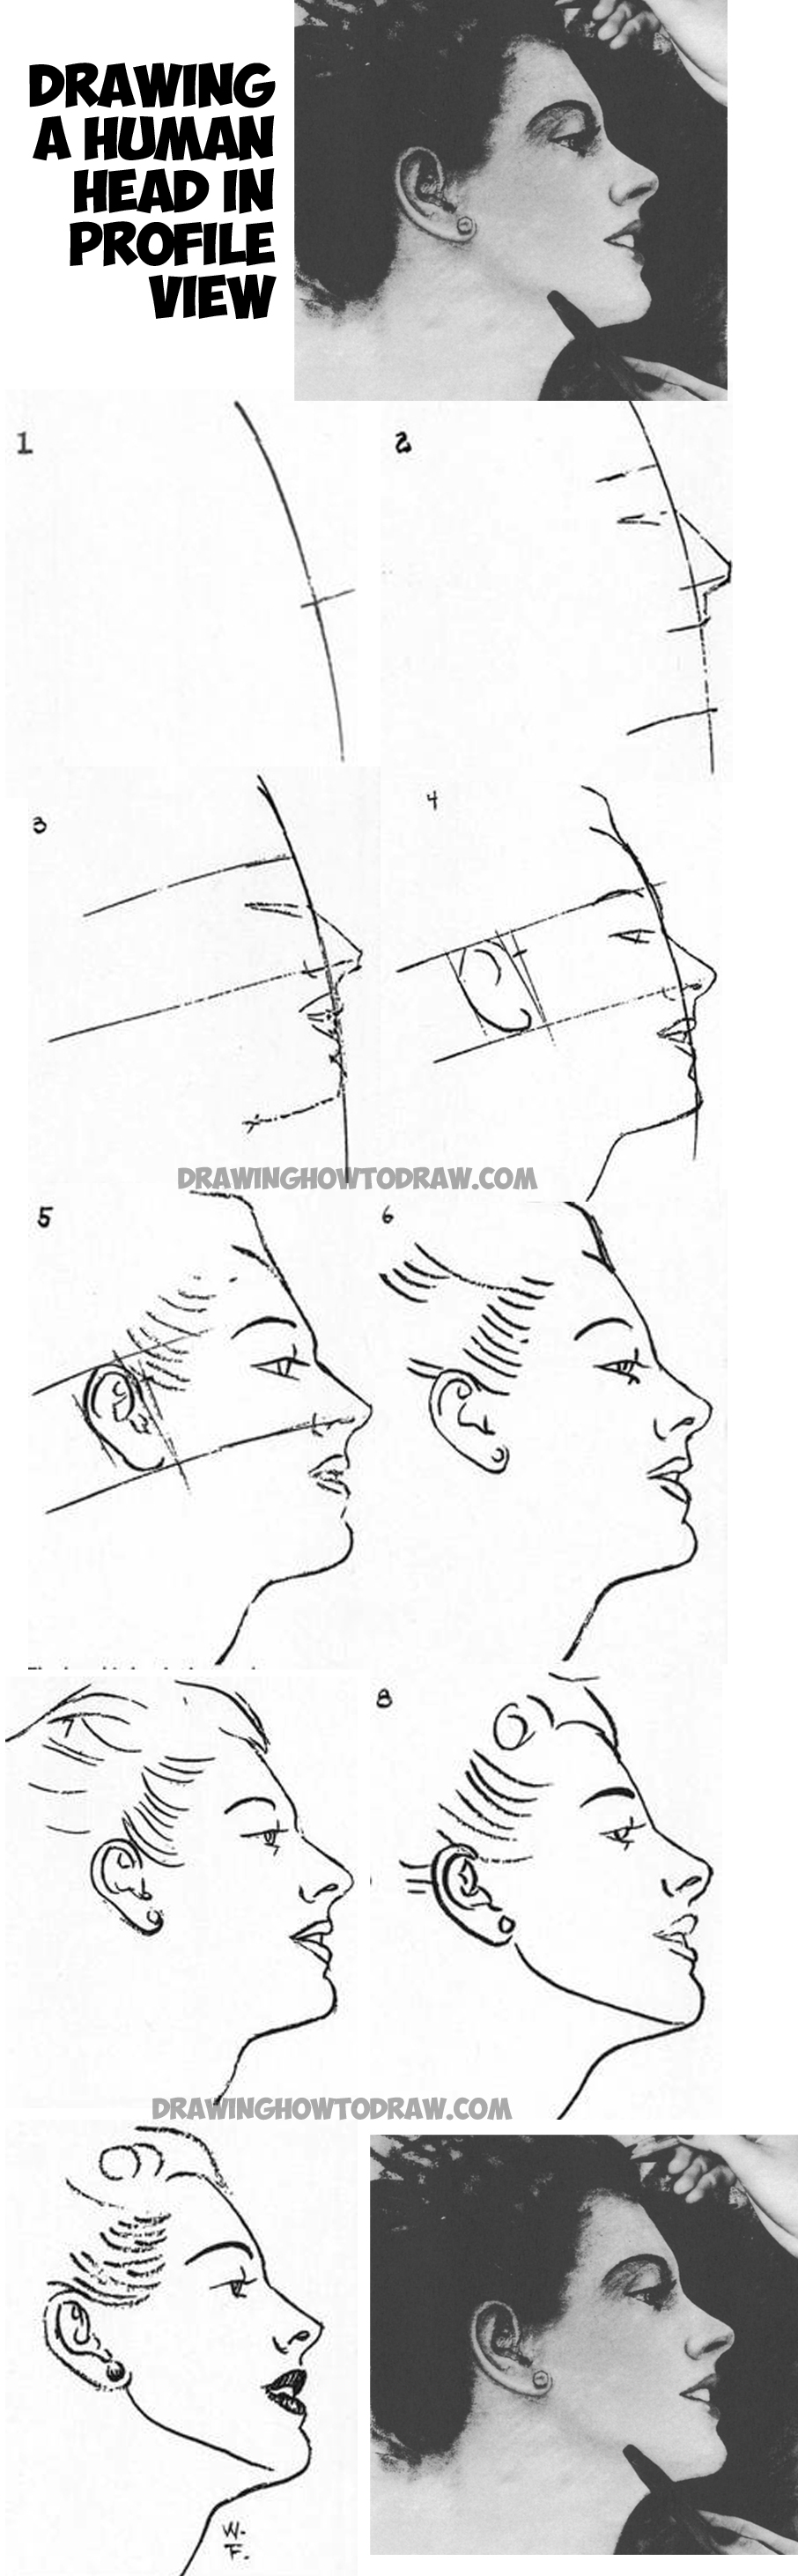 learn how to draw the human head - female face - in profile - from the side